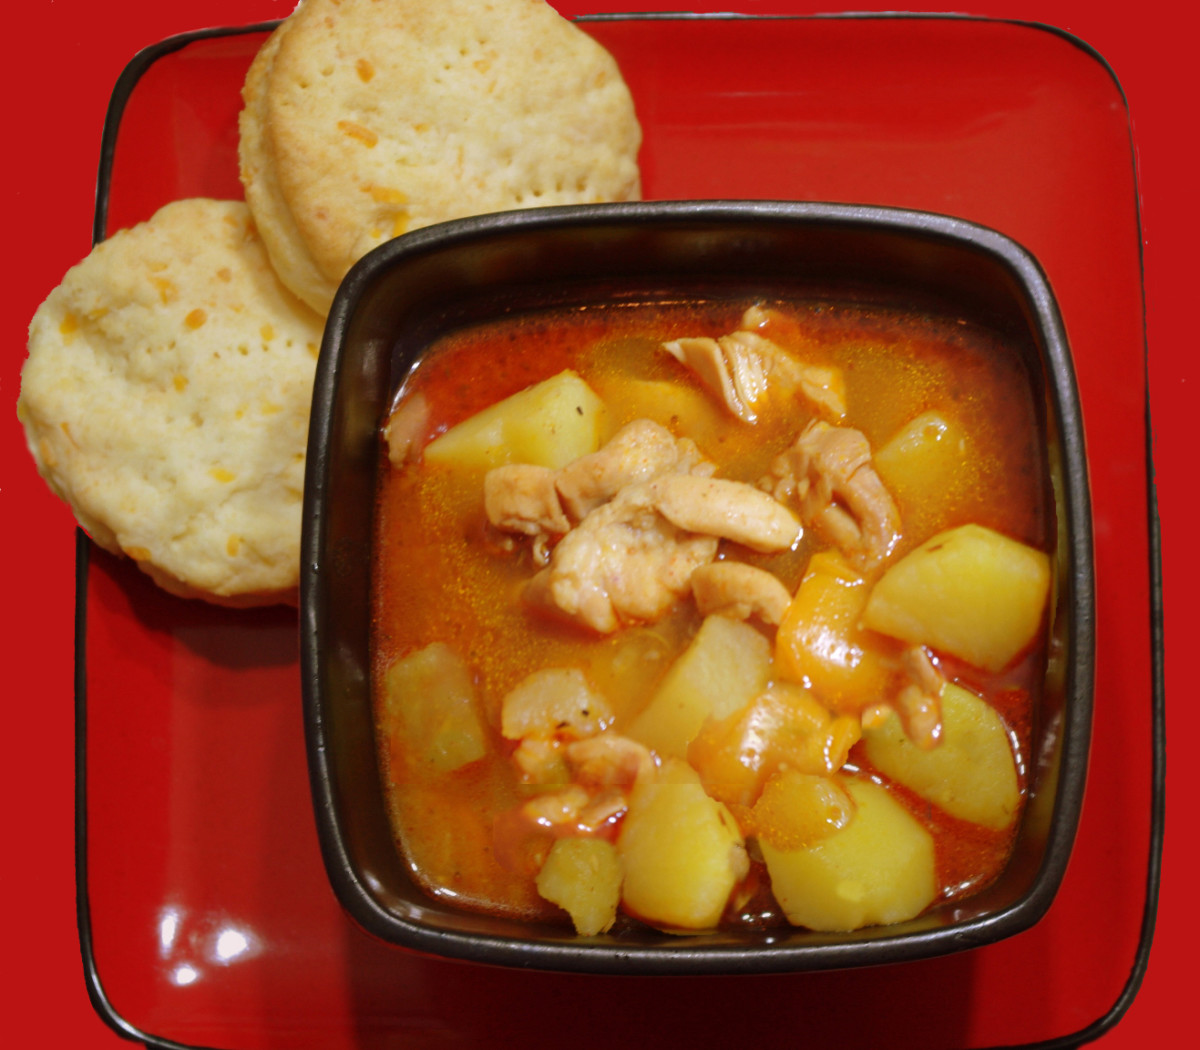 Homemade chicken stew with cheese biscuits